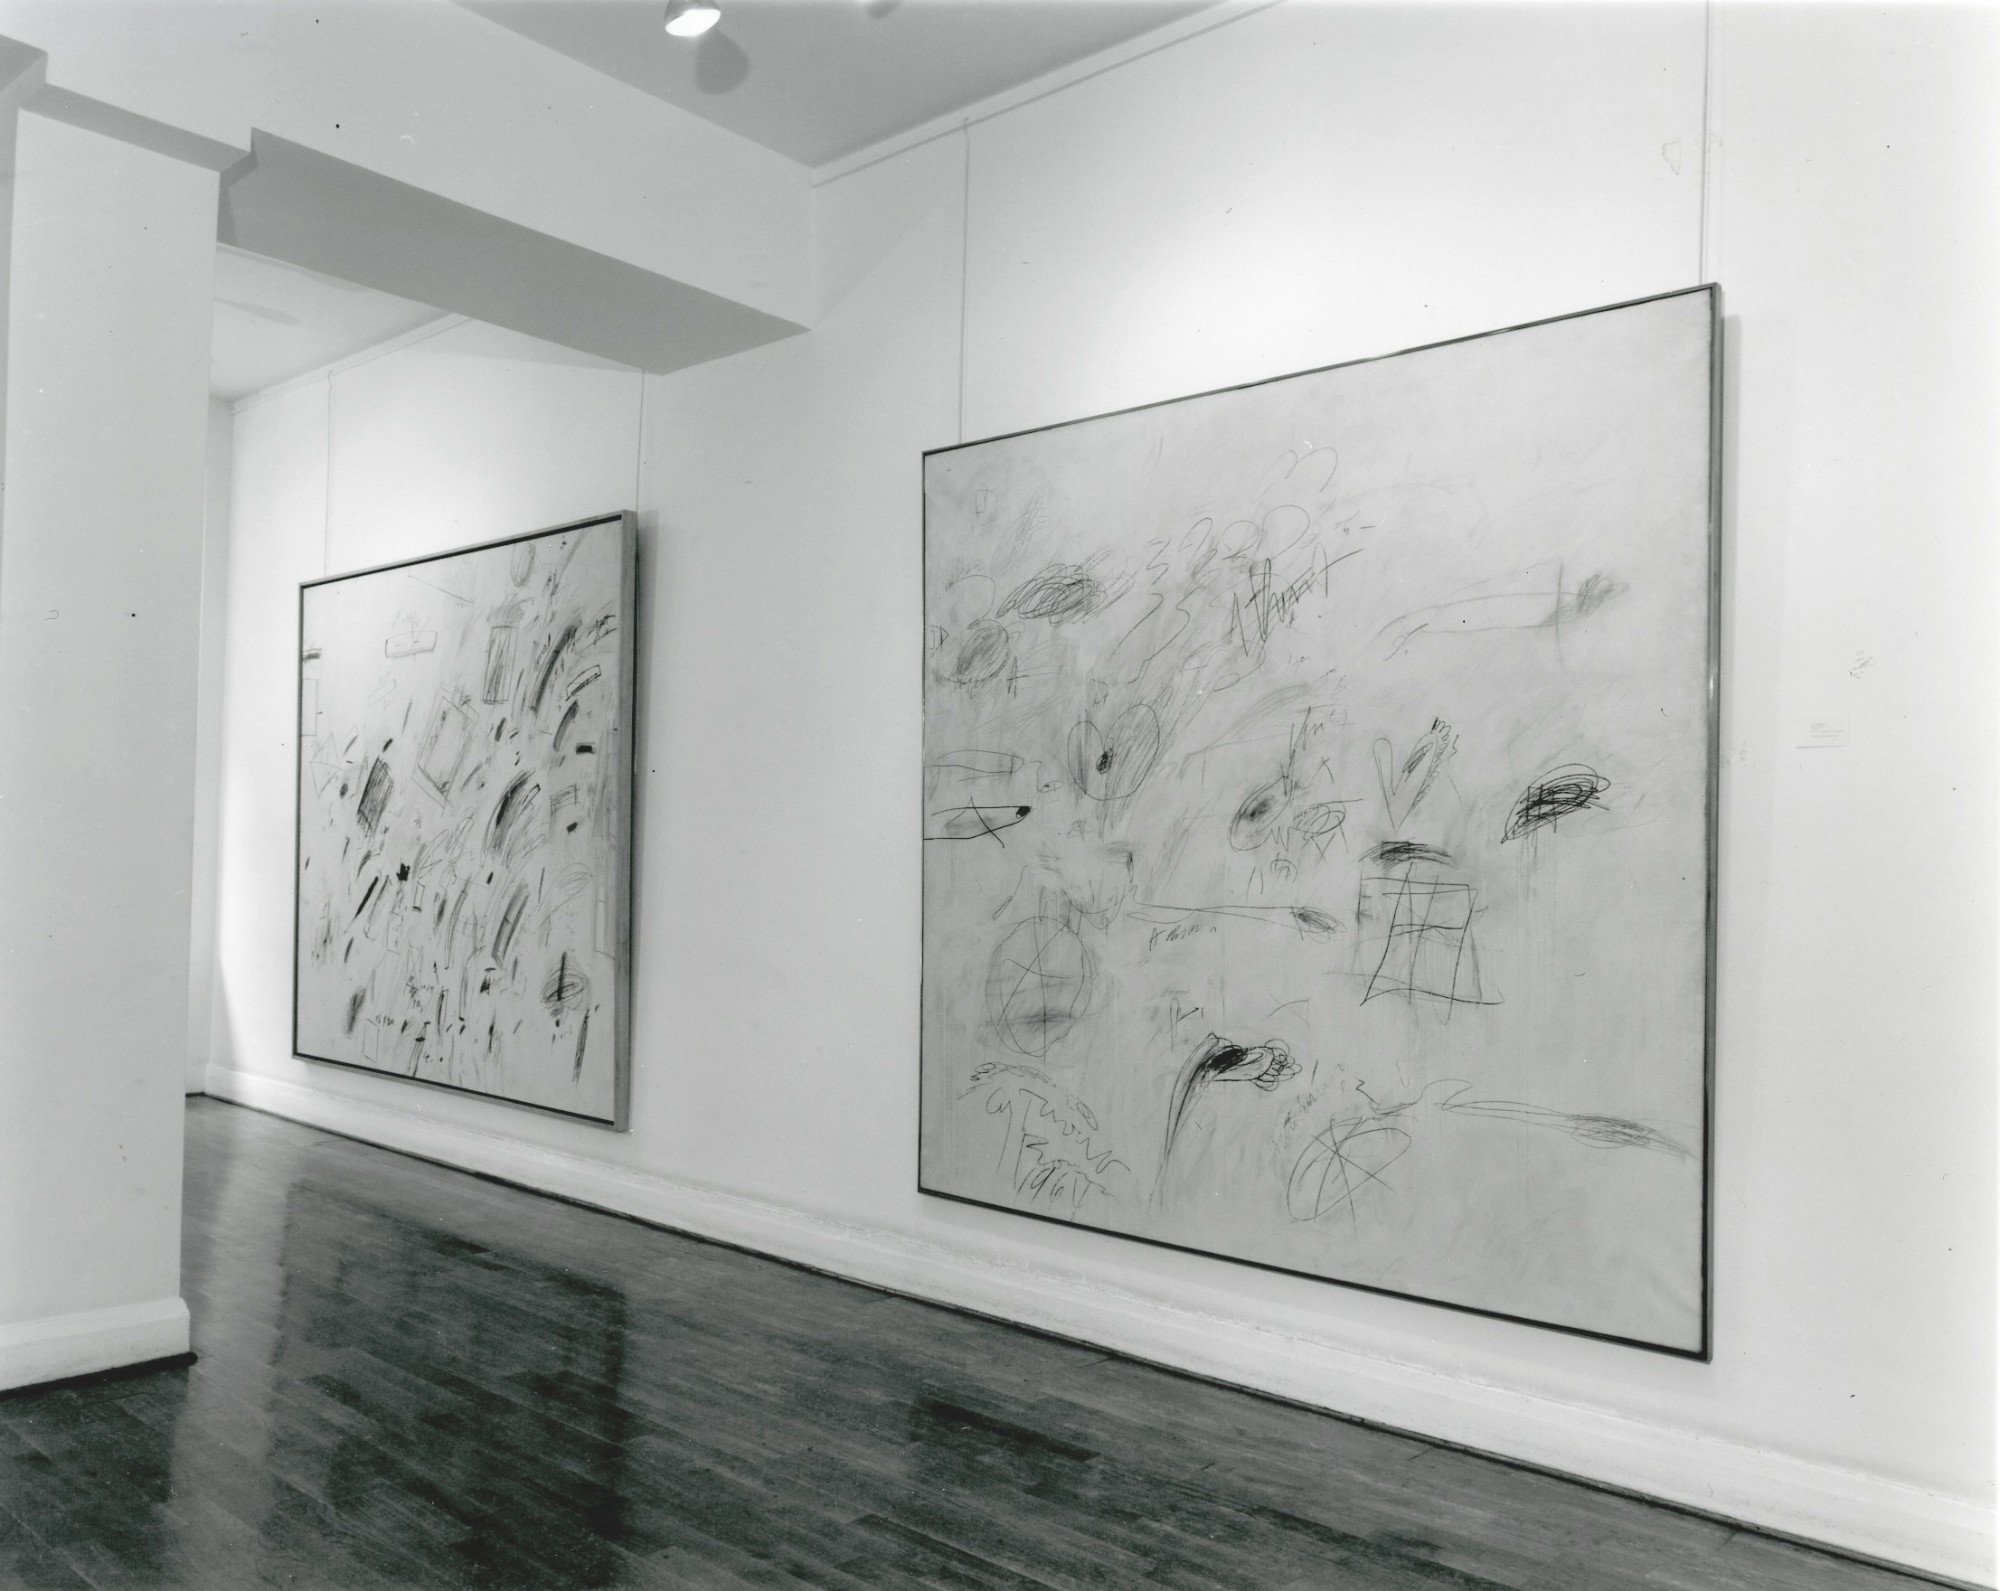 """<span class=""""link fancybox-details-link""""><a href=""""/exhibitions/296/works/image_standalone1483/"""">View Detail Page</a></span><p>CY TWOMBLY 